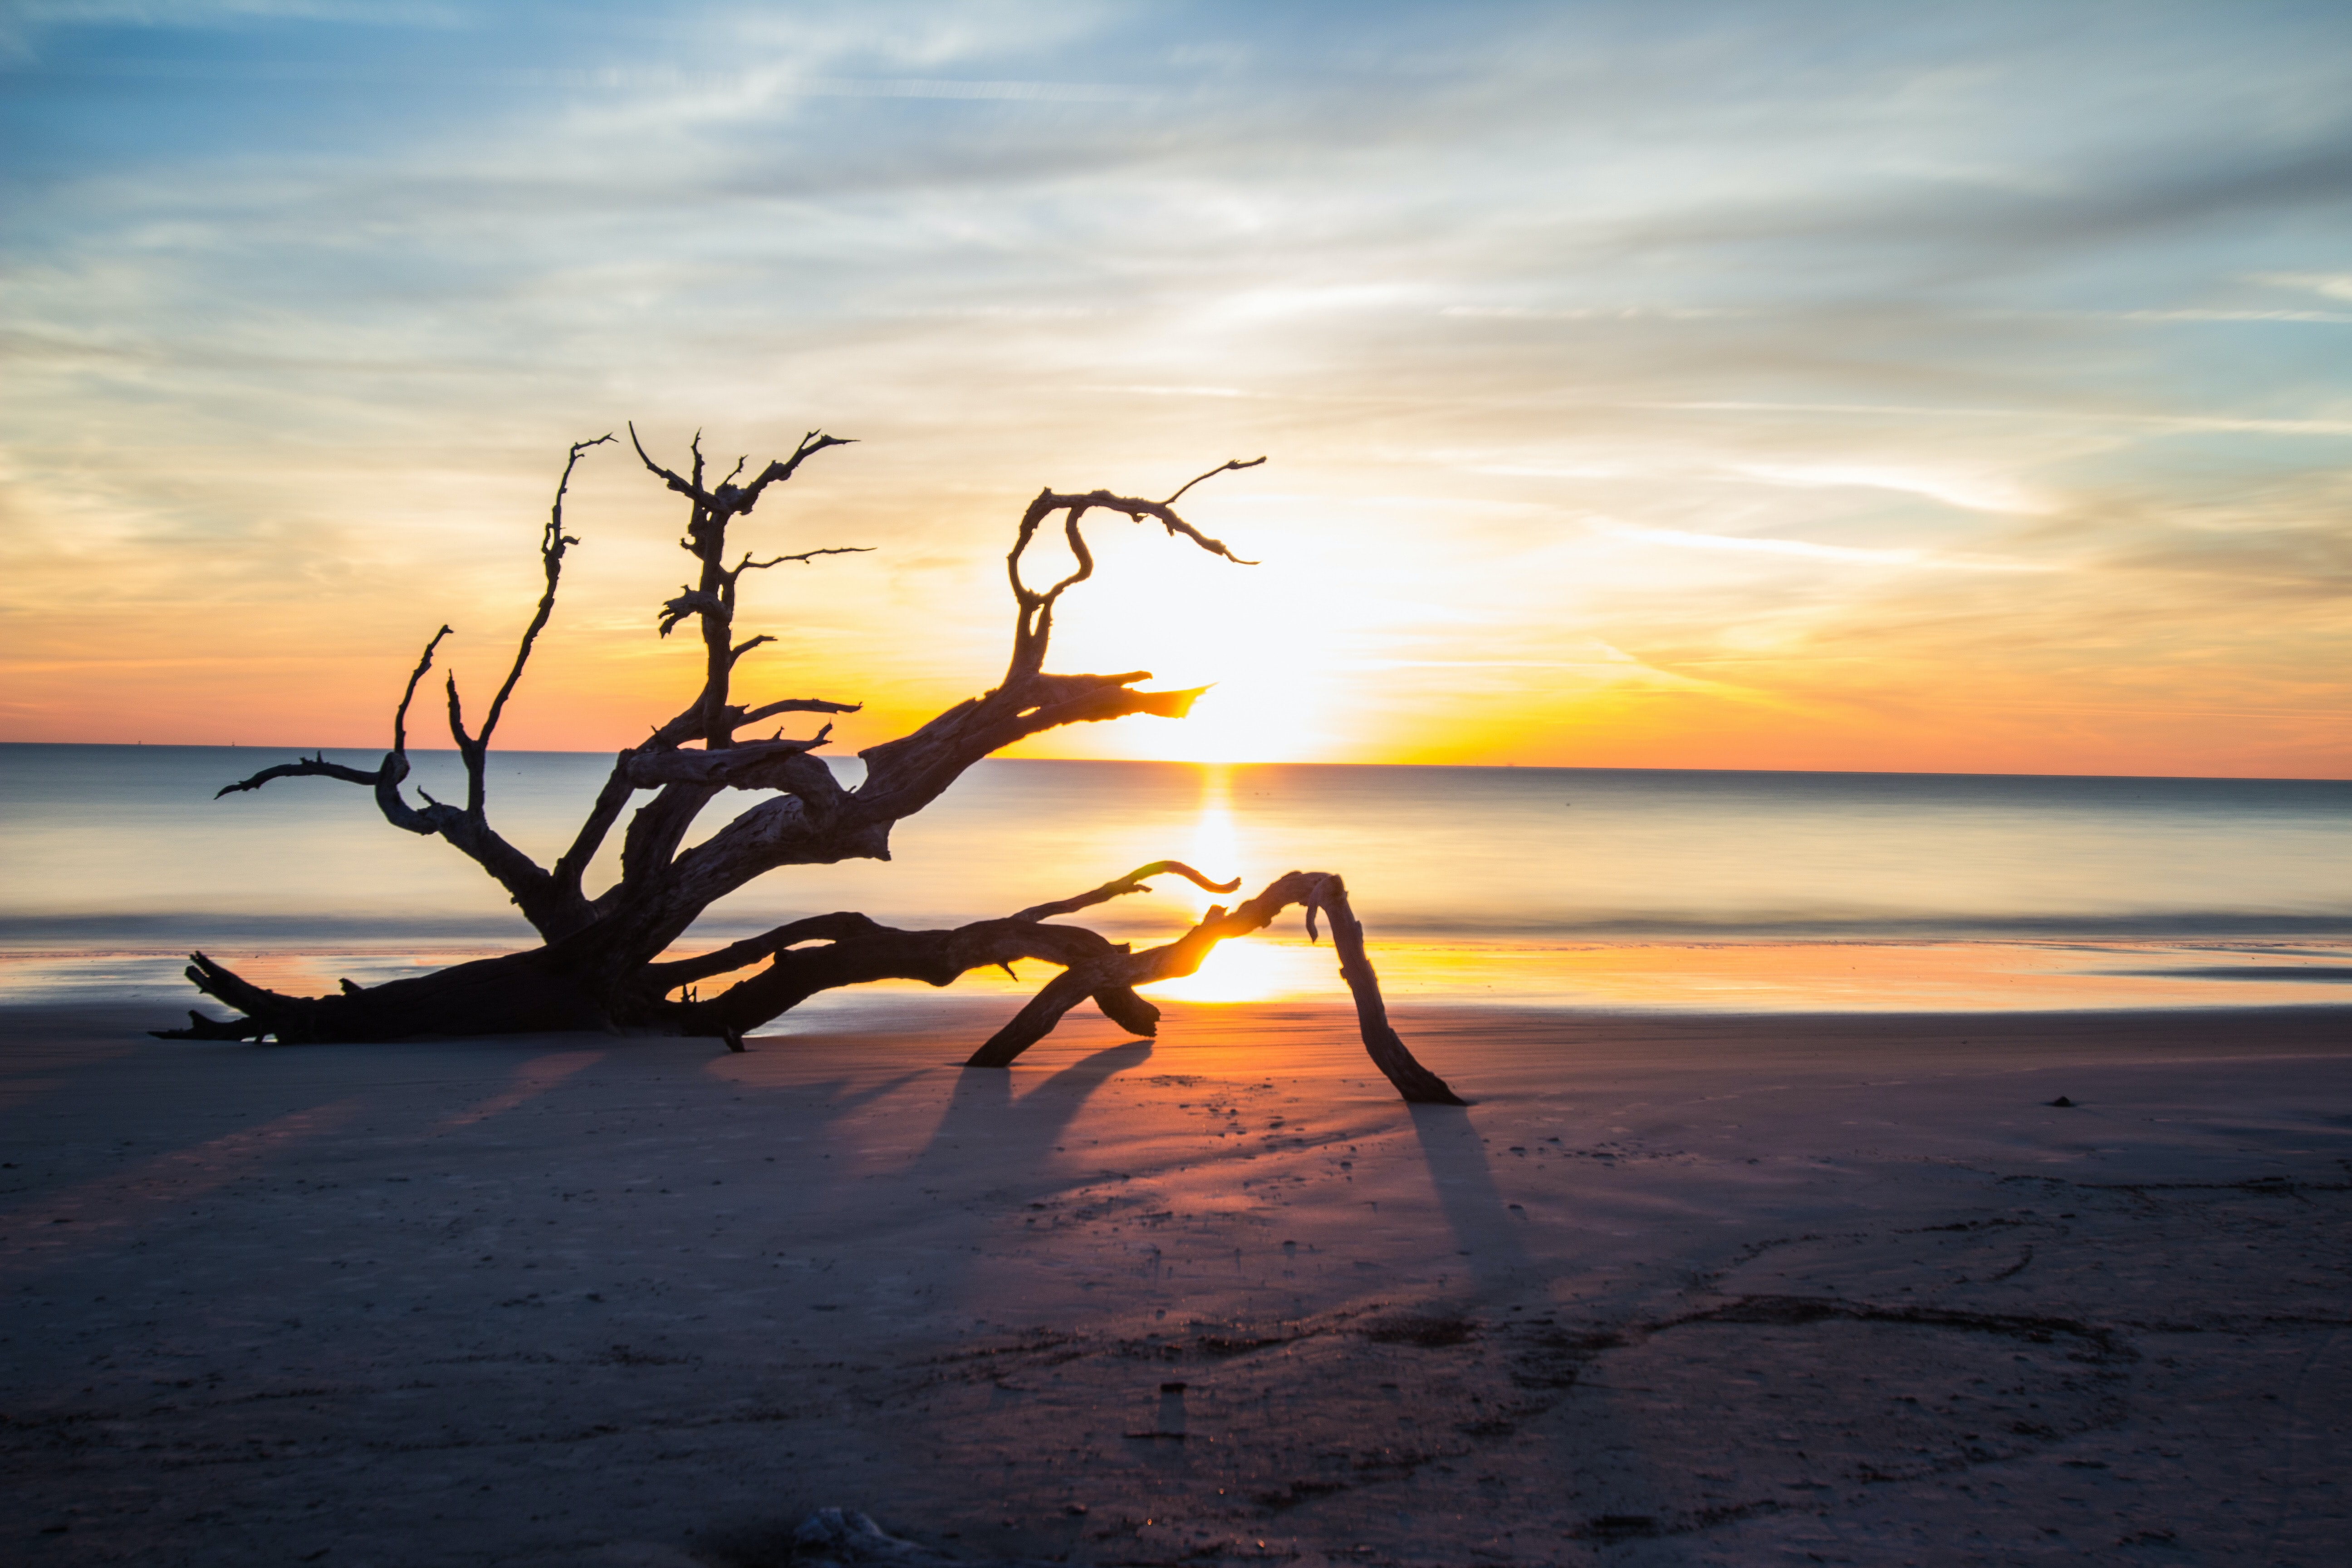 silhouette photography of driftwood on seashore